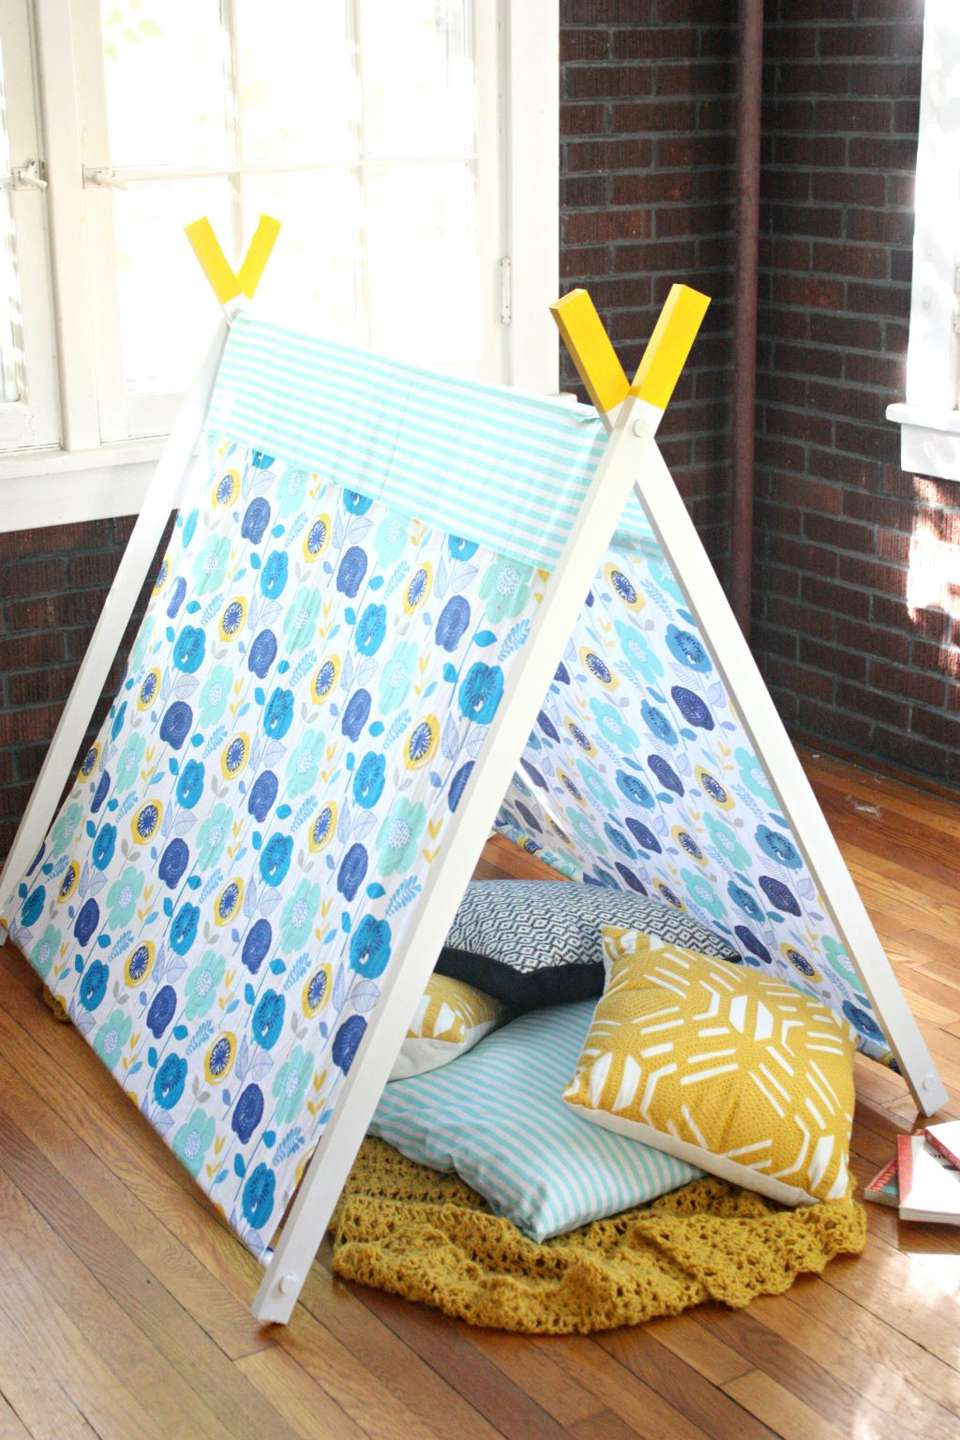 A blue and yellow tent